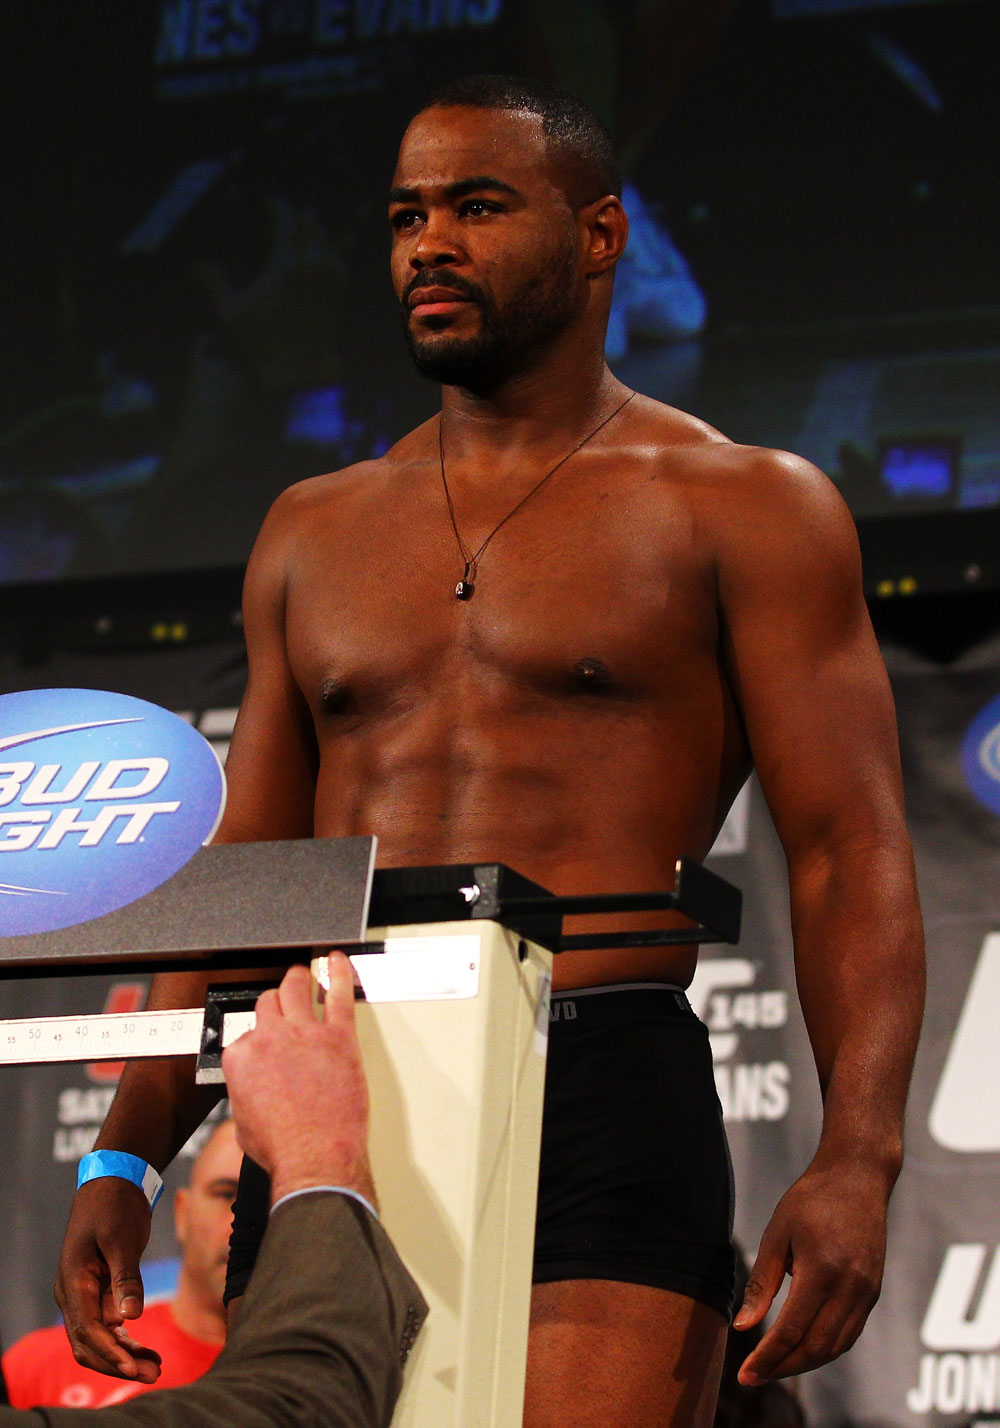 ATLANTA, GA - APRIL 20:  Rashad Evans weighs in during the UFC 145 official weigh in at Fox Theatre on April 20, 2012 in Atlanta, Georgia.  (Photo by Al Bello/Zuffa LLC/Zuffa LLC via Getty Images)